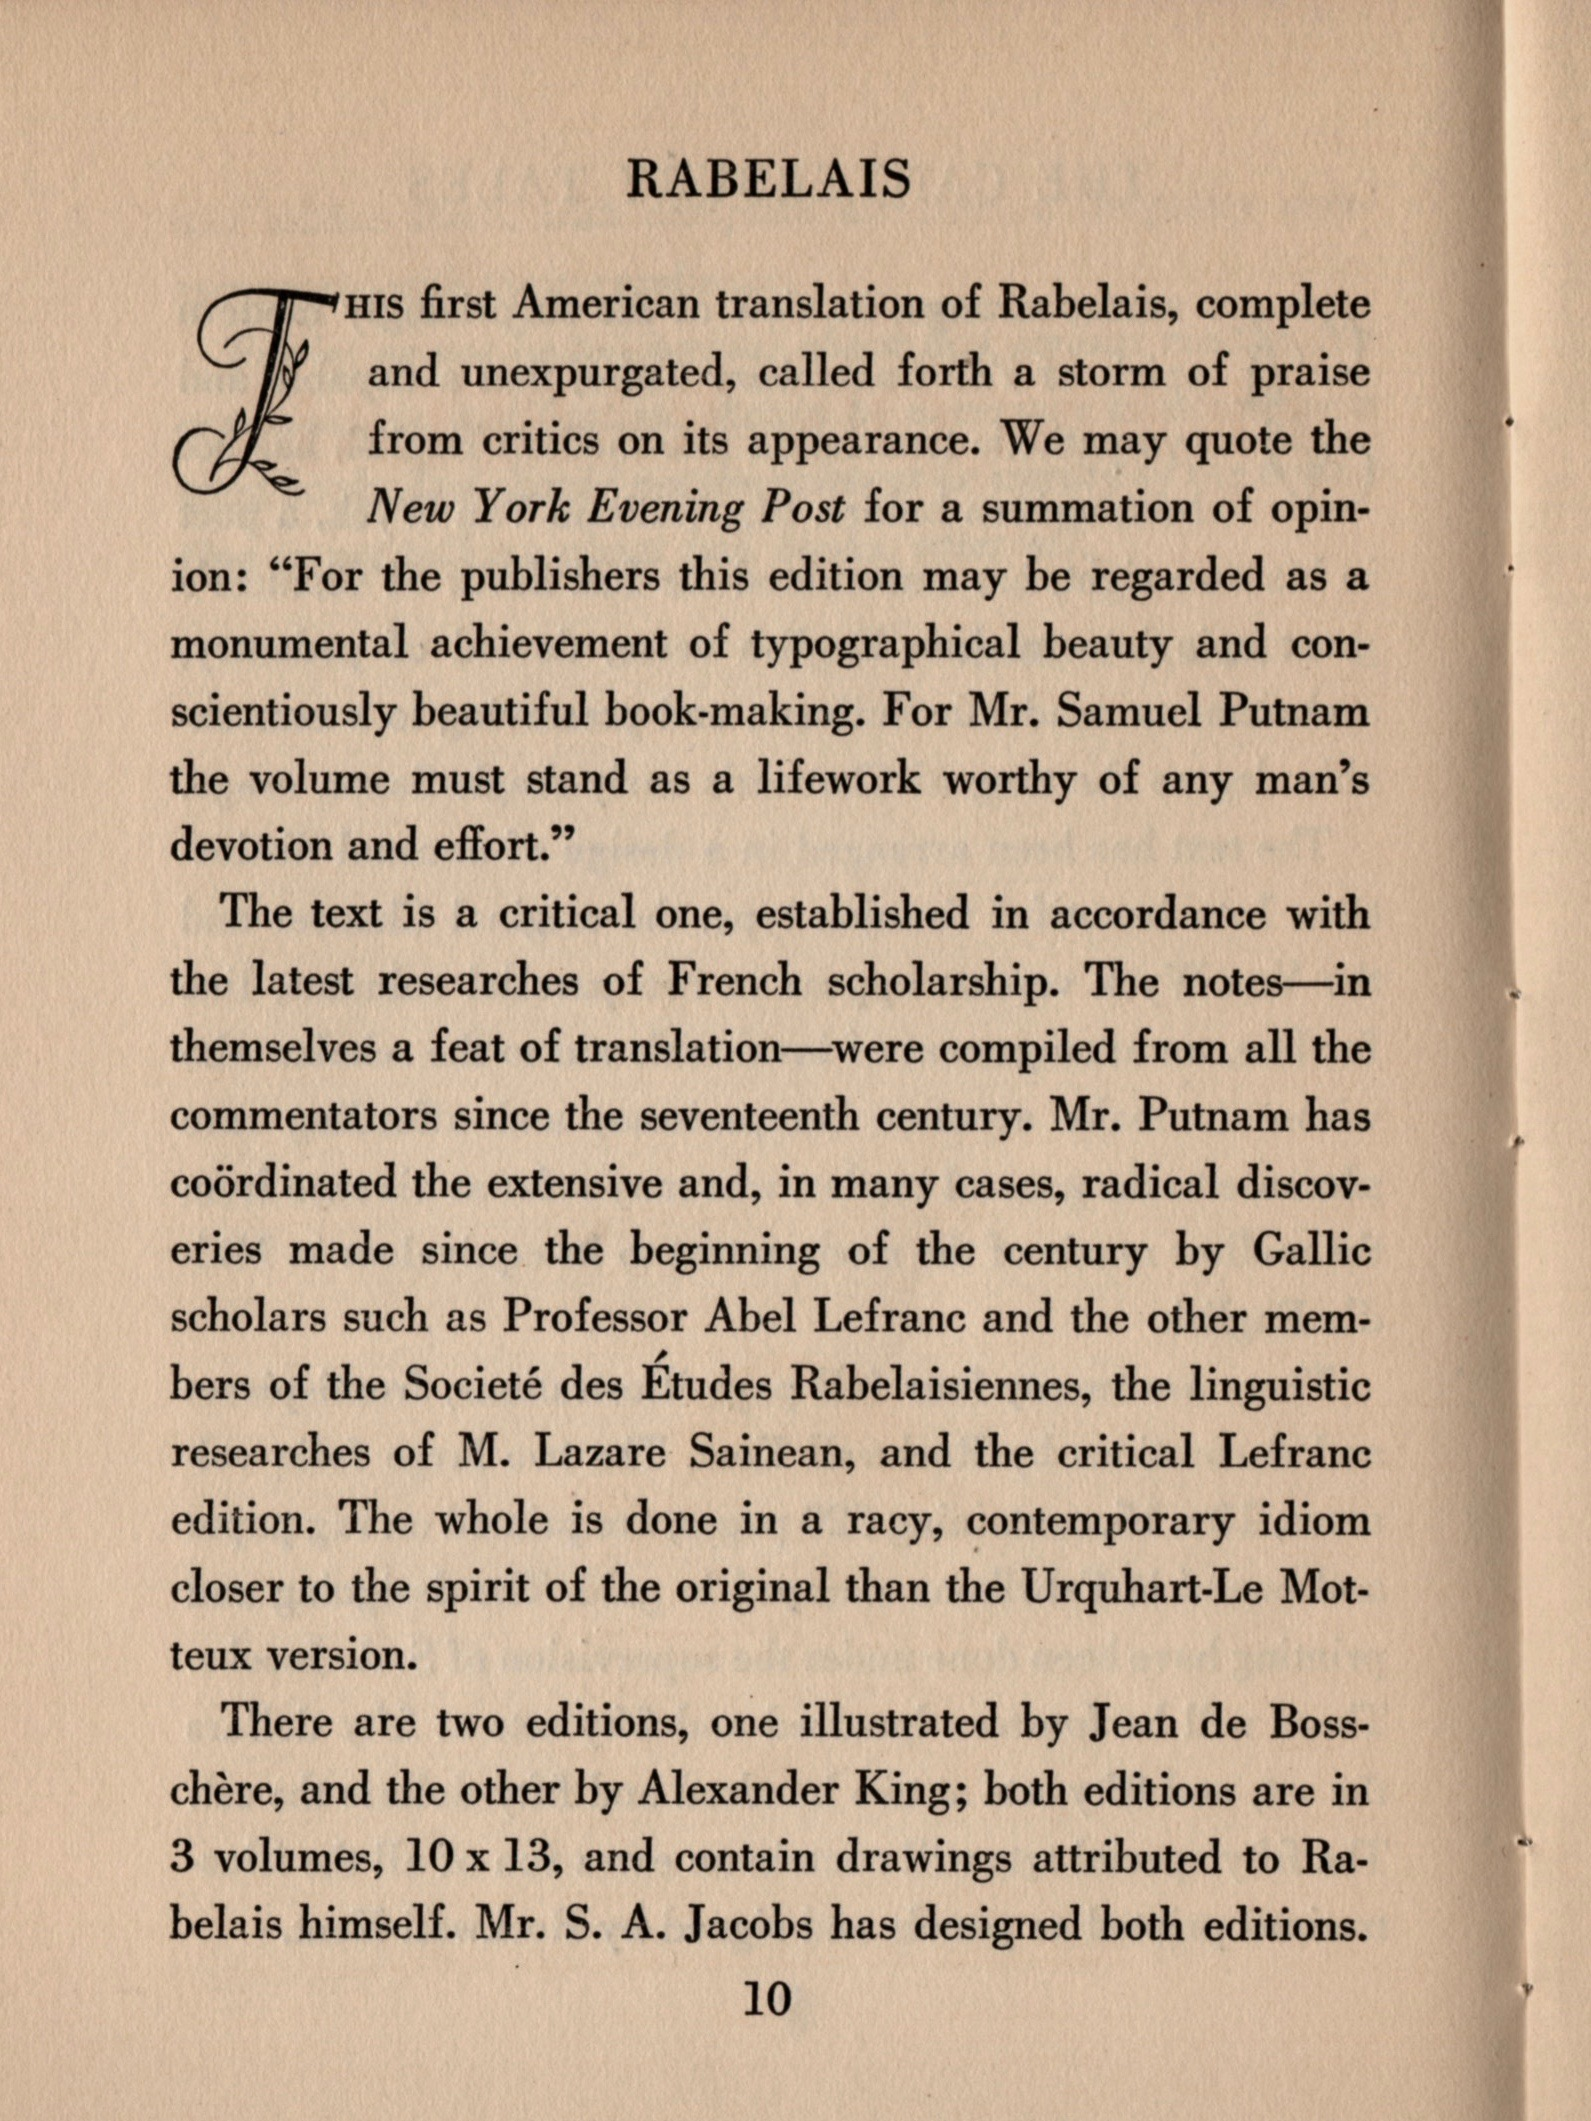 Here is a sample page promoting the publication of a three-volume translated set of Francios Rabelais' works.